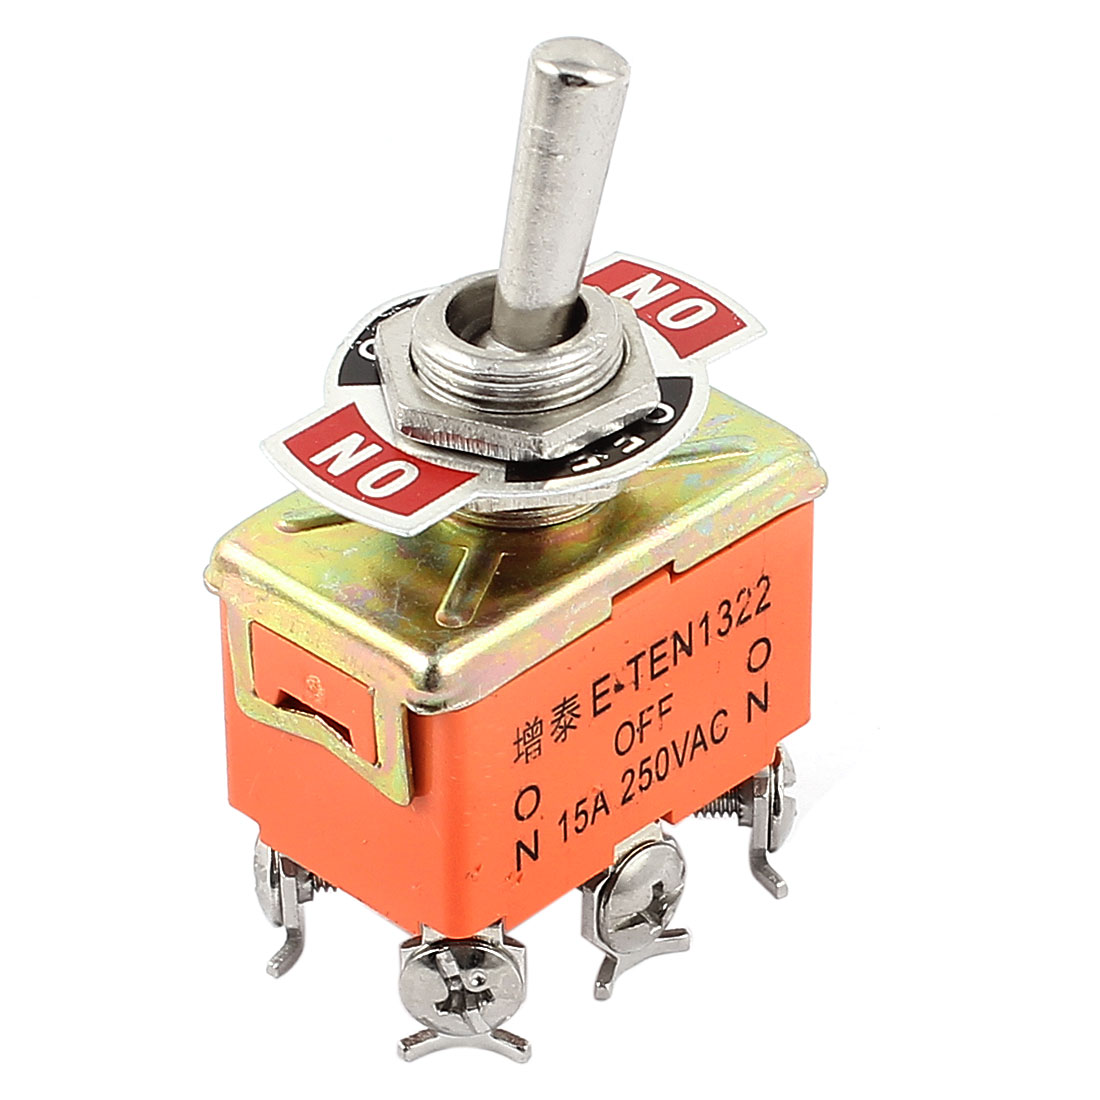 250V 15A DPDT 6 Terminals 3-Position ON-OFF-ON Toggle Flick Switch - image 3 of 3